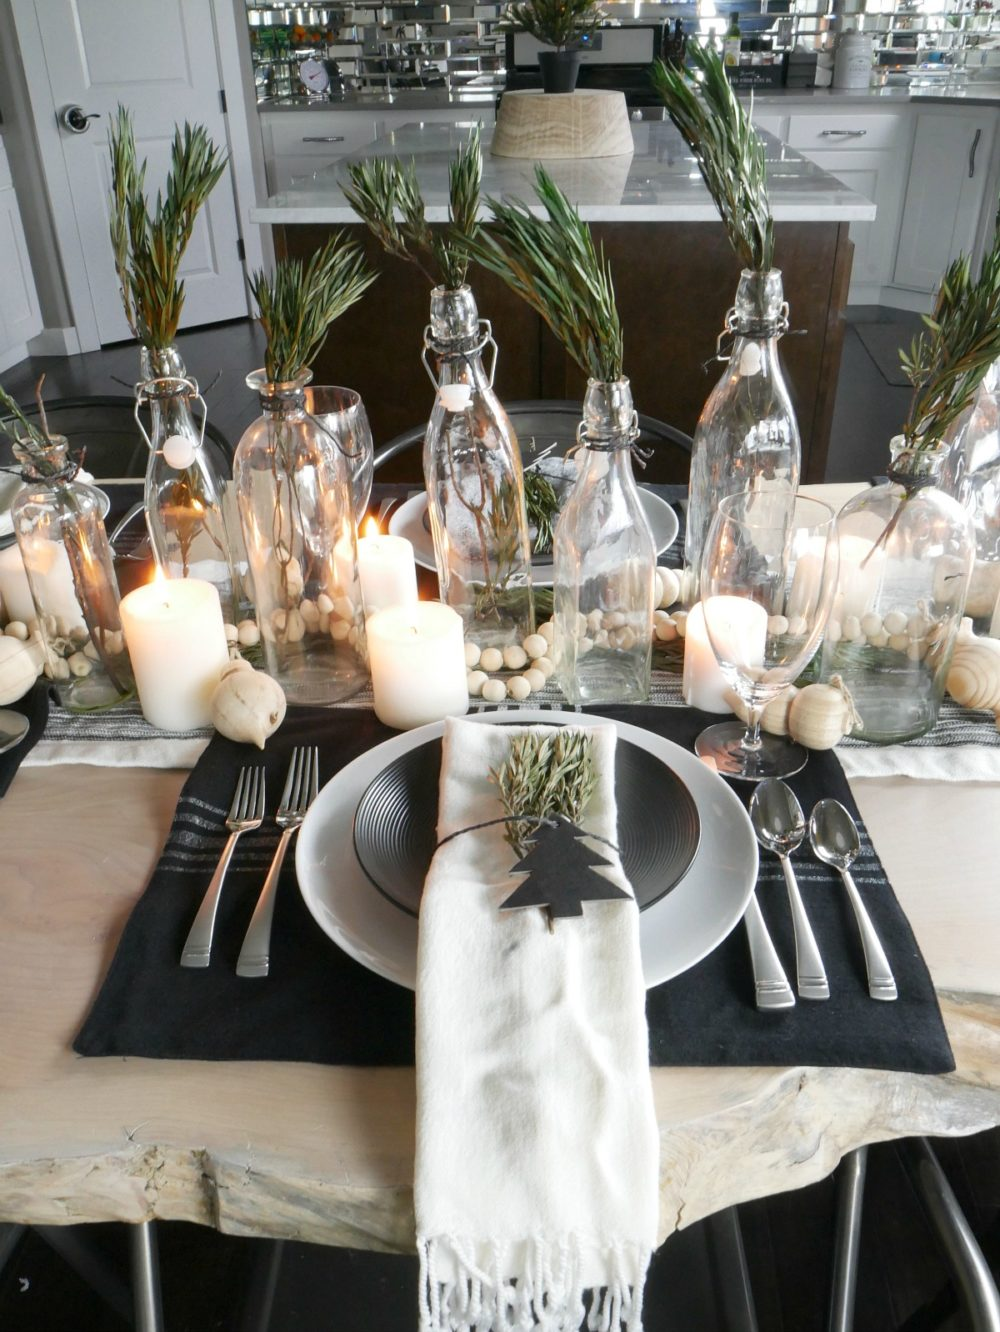 Christmas Table Centerpiece made using glass bottles with sprigs of greenery. The candles next to them give off a pretty glow.